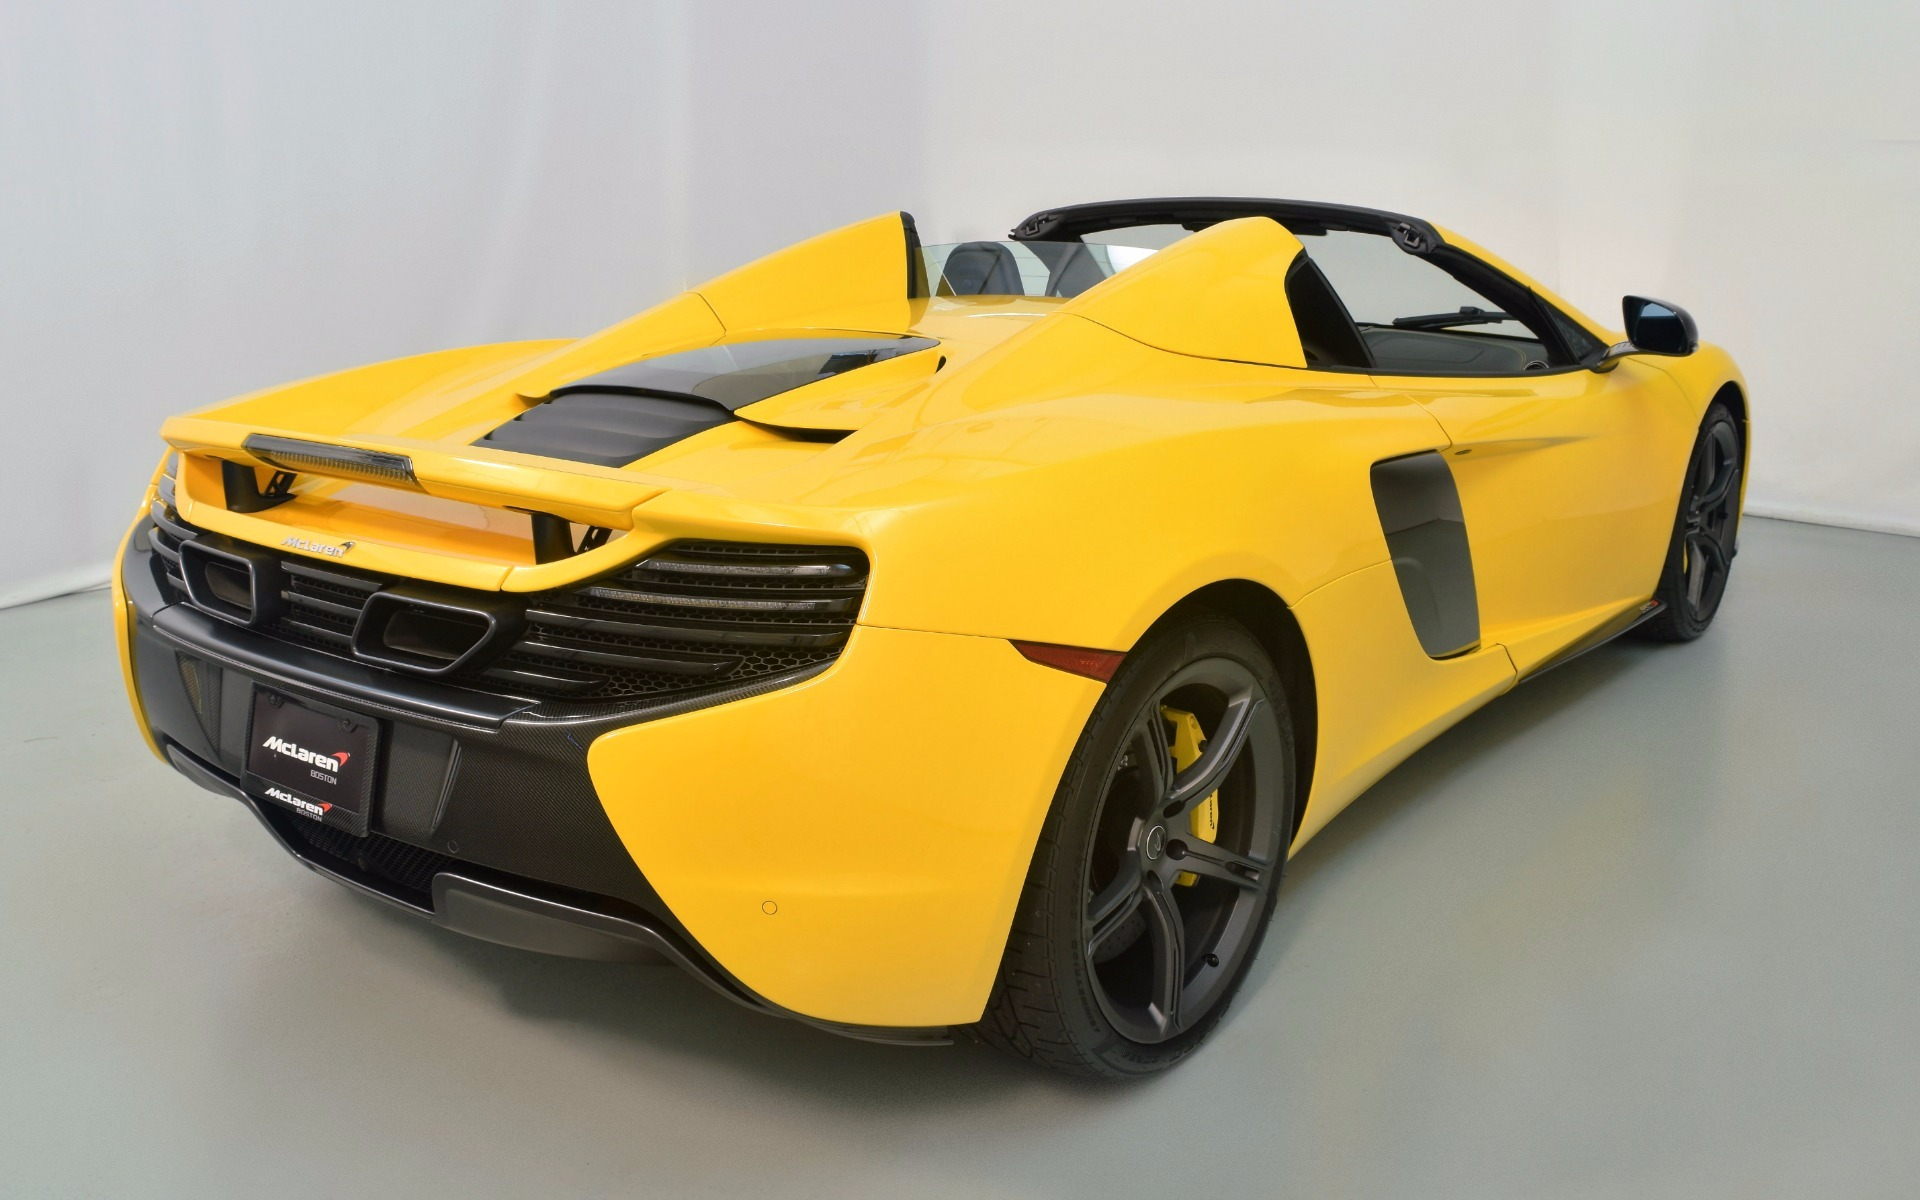 2016 mclaren 650s spider for sale in norwell ma 005893 mclaren boston. Black Bedroom Furniture Sets. Home Design Ideas